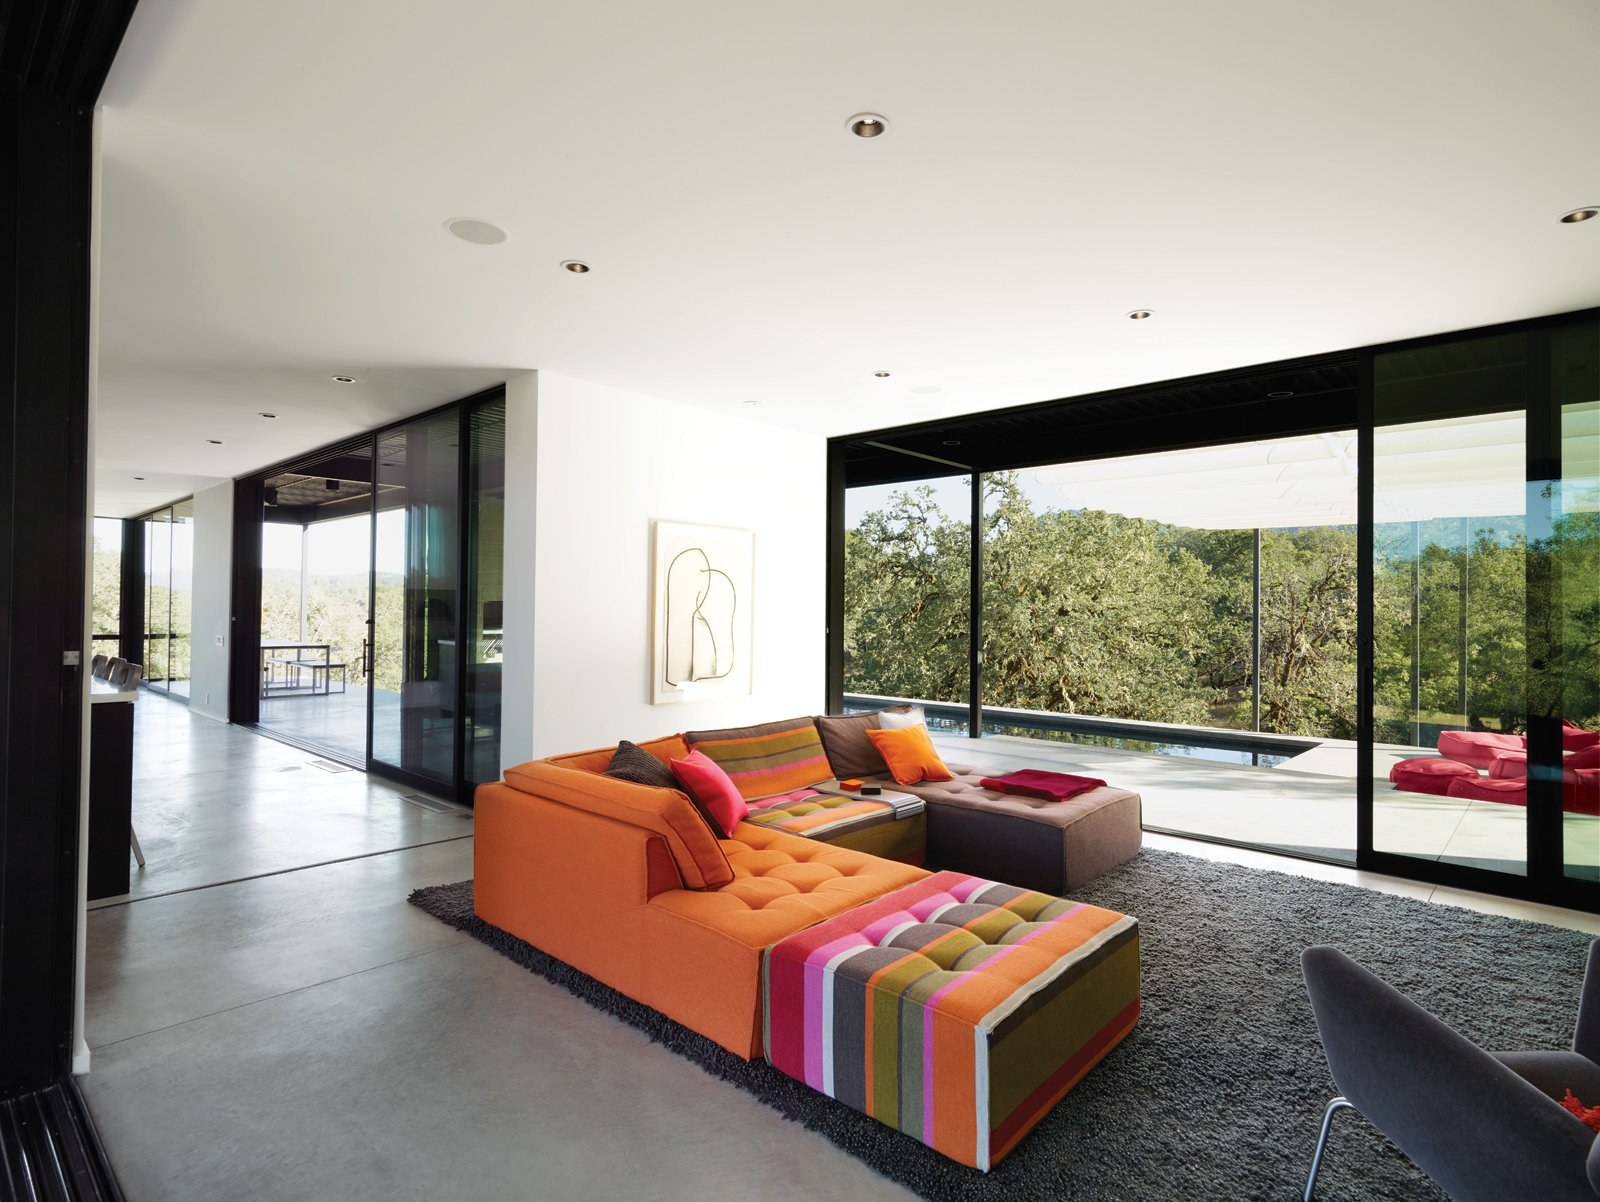 The Mikado 2 sofa by Hans Hopfer for Roche Bobois is a bright and cheery centerpiece in the otherwise sedate living room. The nubby wool Photon rug from Design Within Reach warms up the expanse of concrete. The framed drawing is by the Los Angeles–based artist Daniel Brice. Huge sliding doors open the house to the outdoors and virtually double the Burtons' living space.